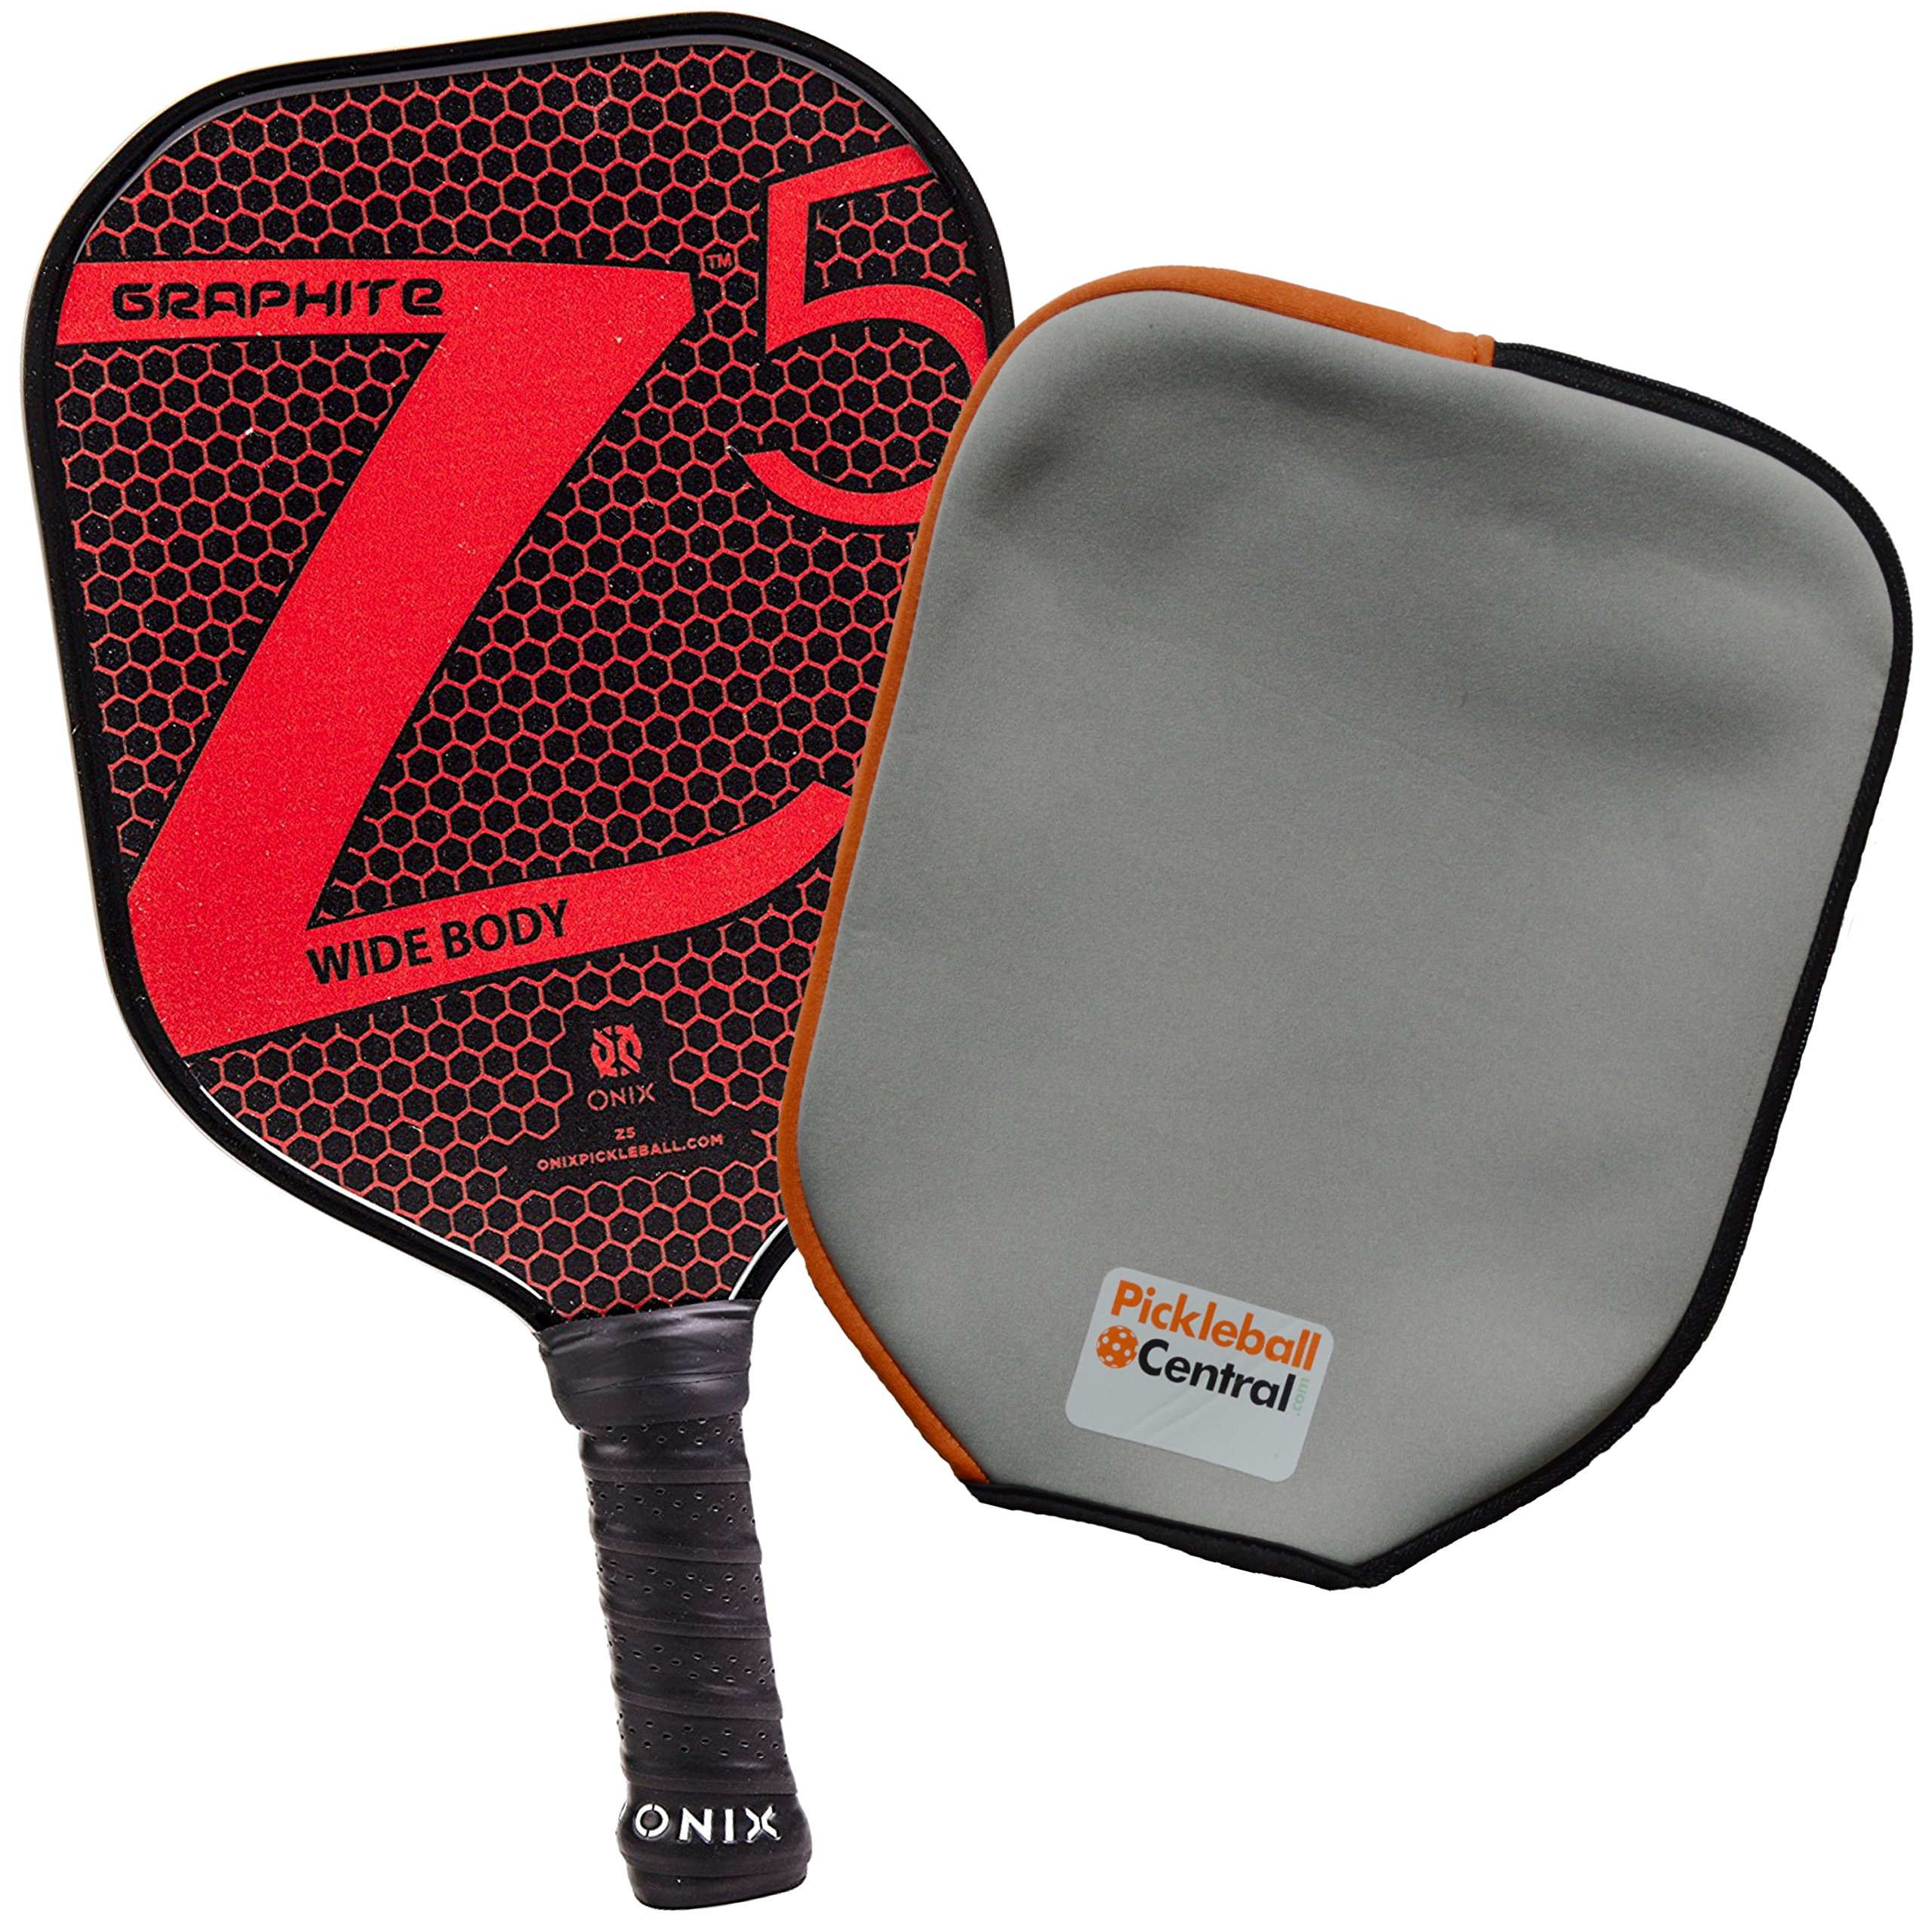 Onix Z5 Graphite Pickleball Paddle and Paddle Cover (Red) by Onix (Image #1)